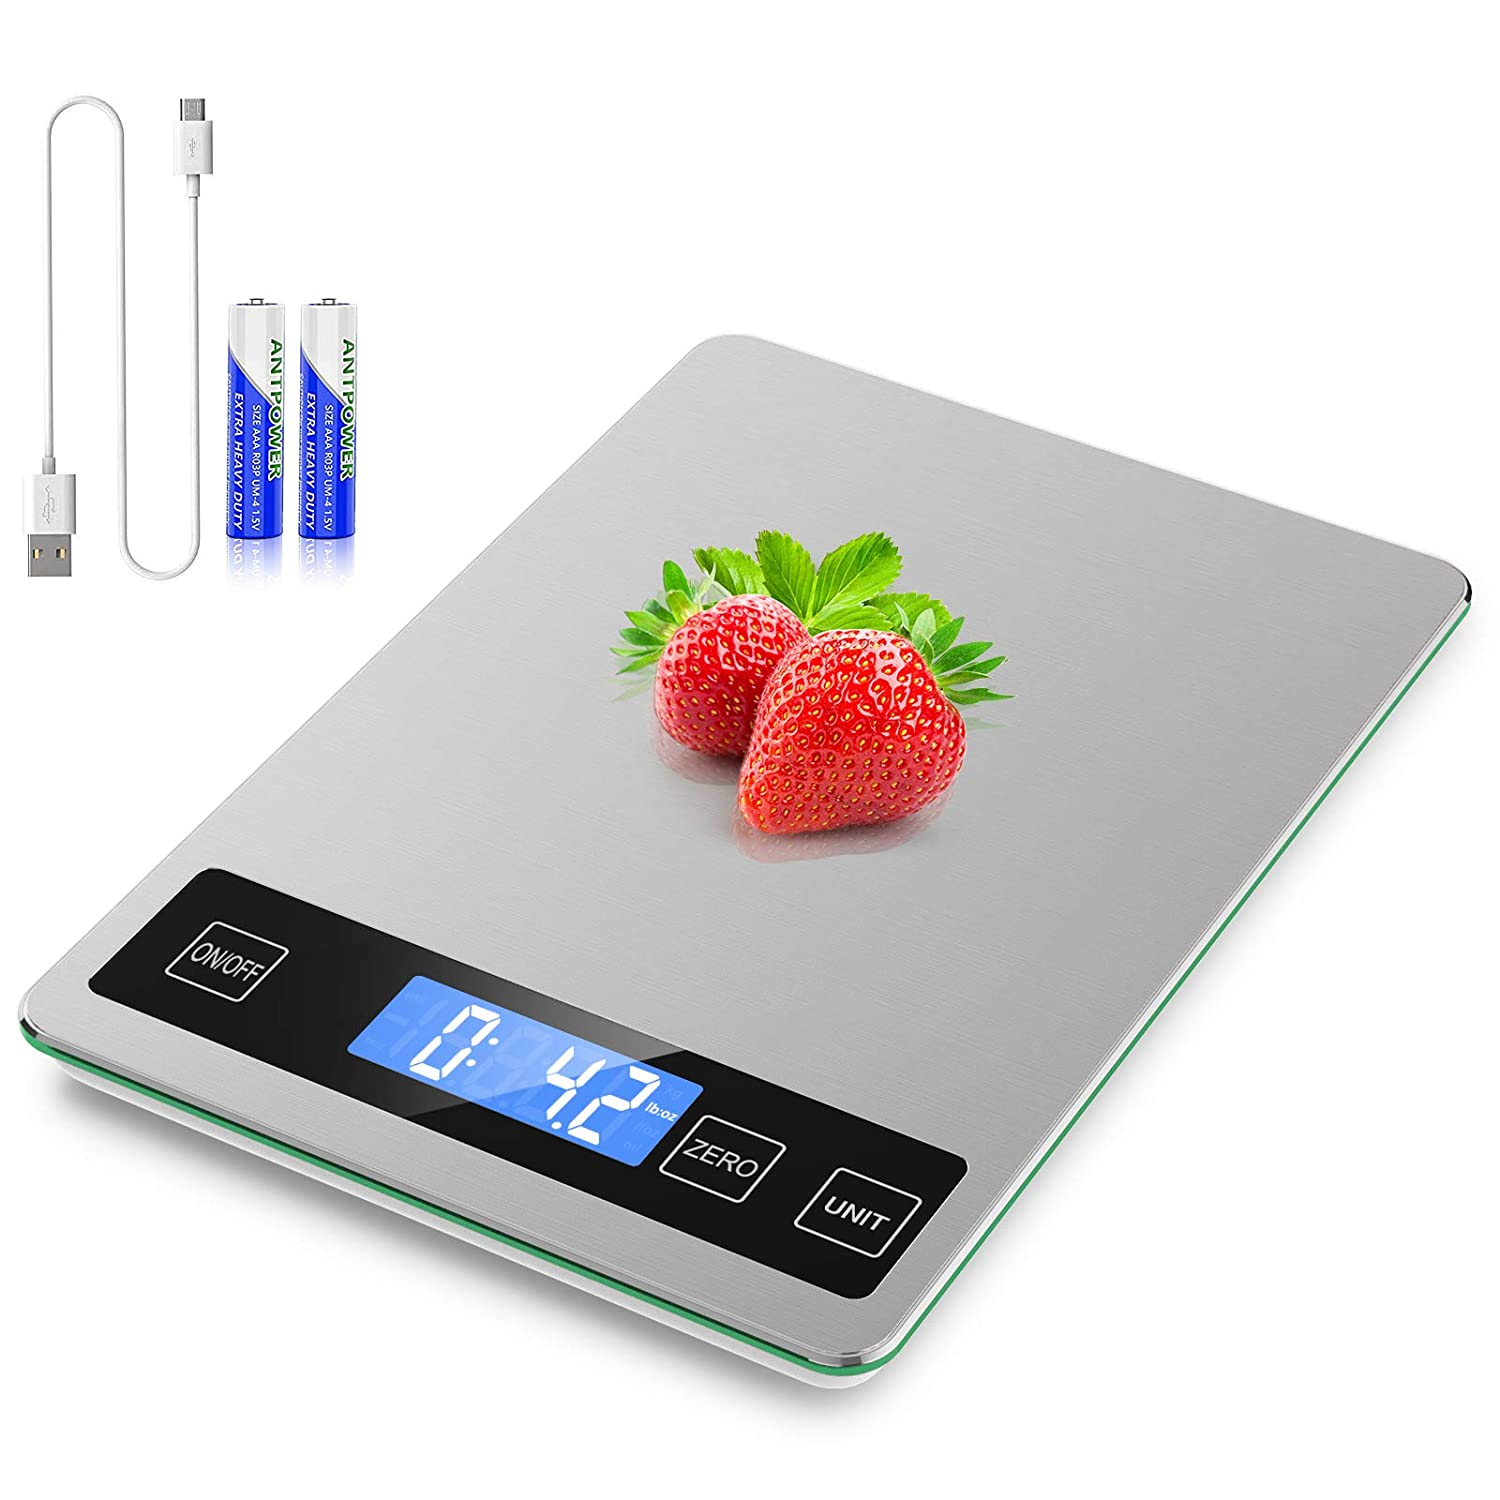 Food Scale with USB Rechargeable, 11lb Digital Kitchen Scale Weight Grams and oz for Baking Cooking, Stainless Steel and Tempered Glass Waterproof Body, 1g/0.1oz Precise Graduation, Batteries Included